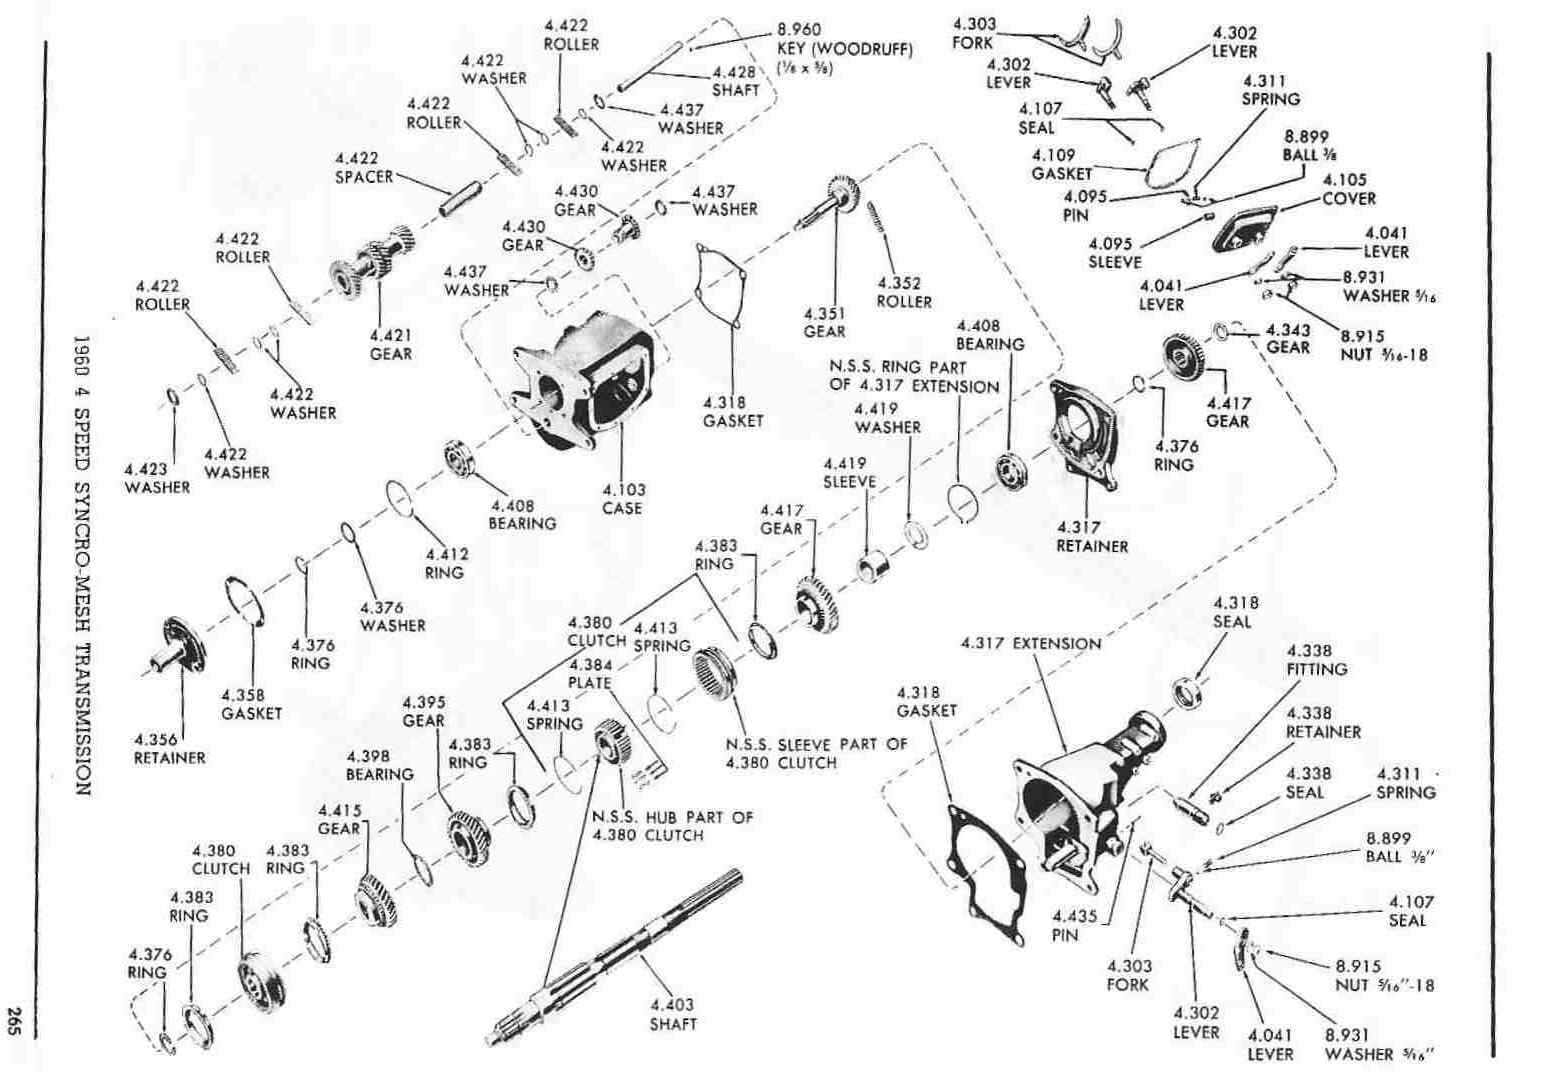 hight resolution of chevy turbo 350 transmission specs autos post chevrolet powerglide transmission 52 chevy powerglide trans leak